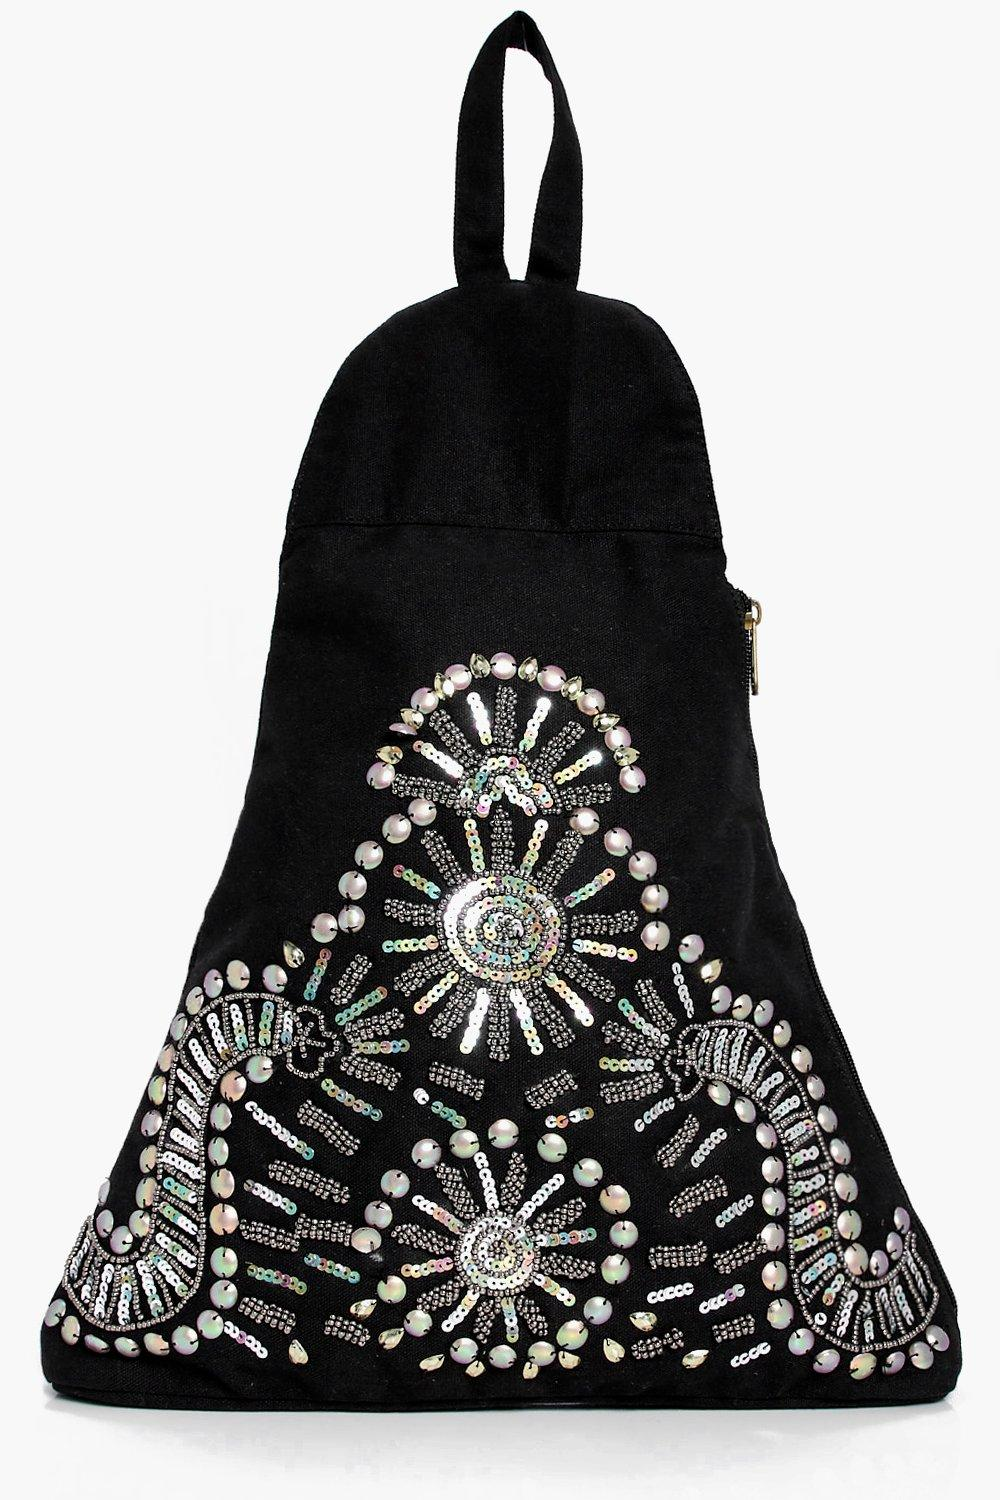 Stud Embellished Triangular Rucksack - black - Mac